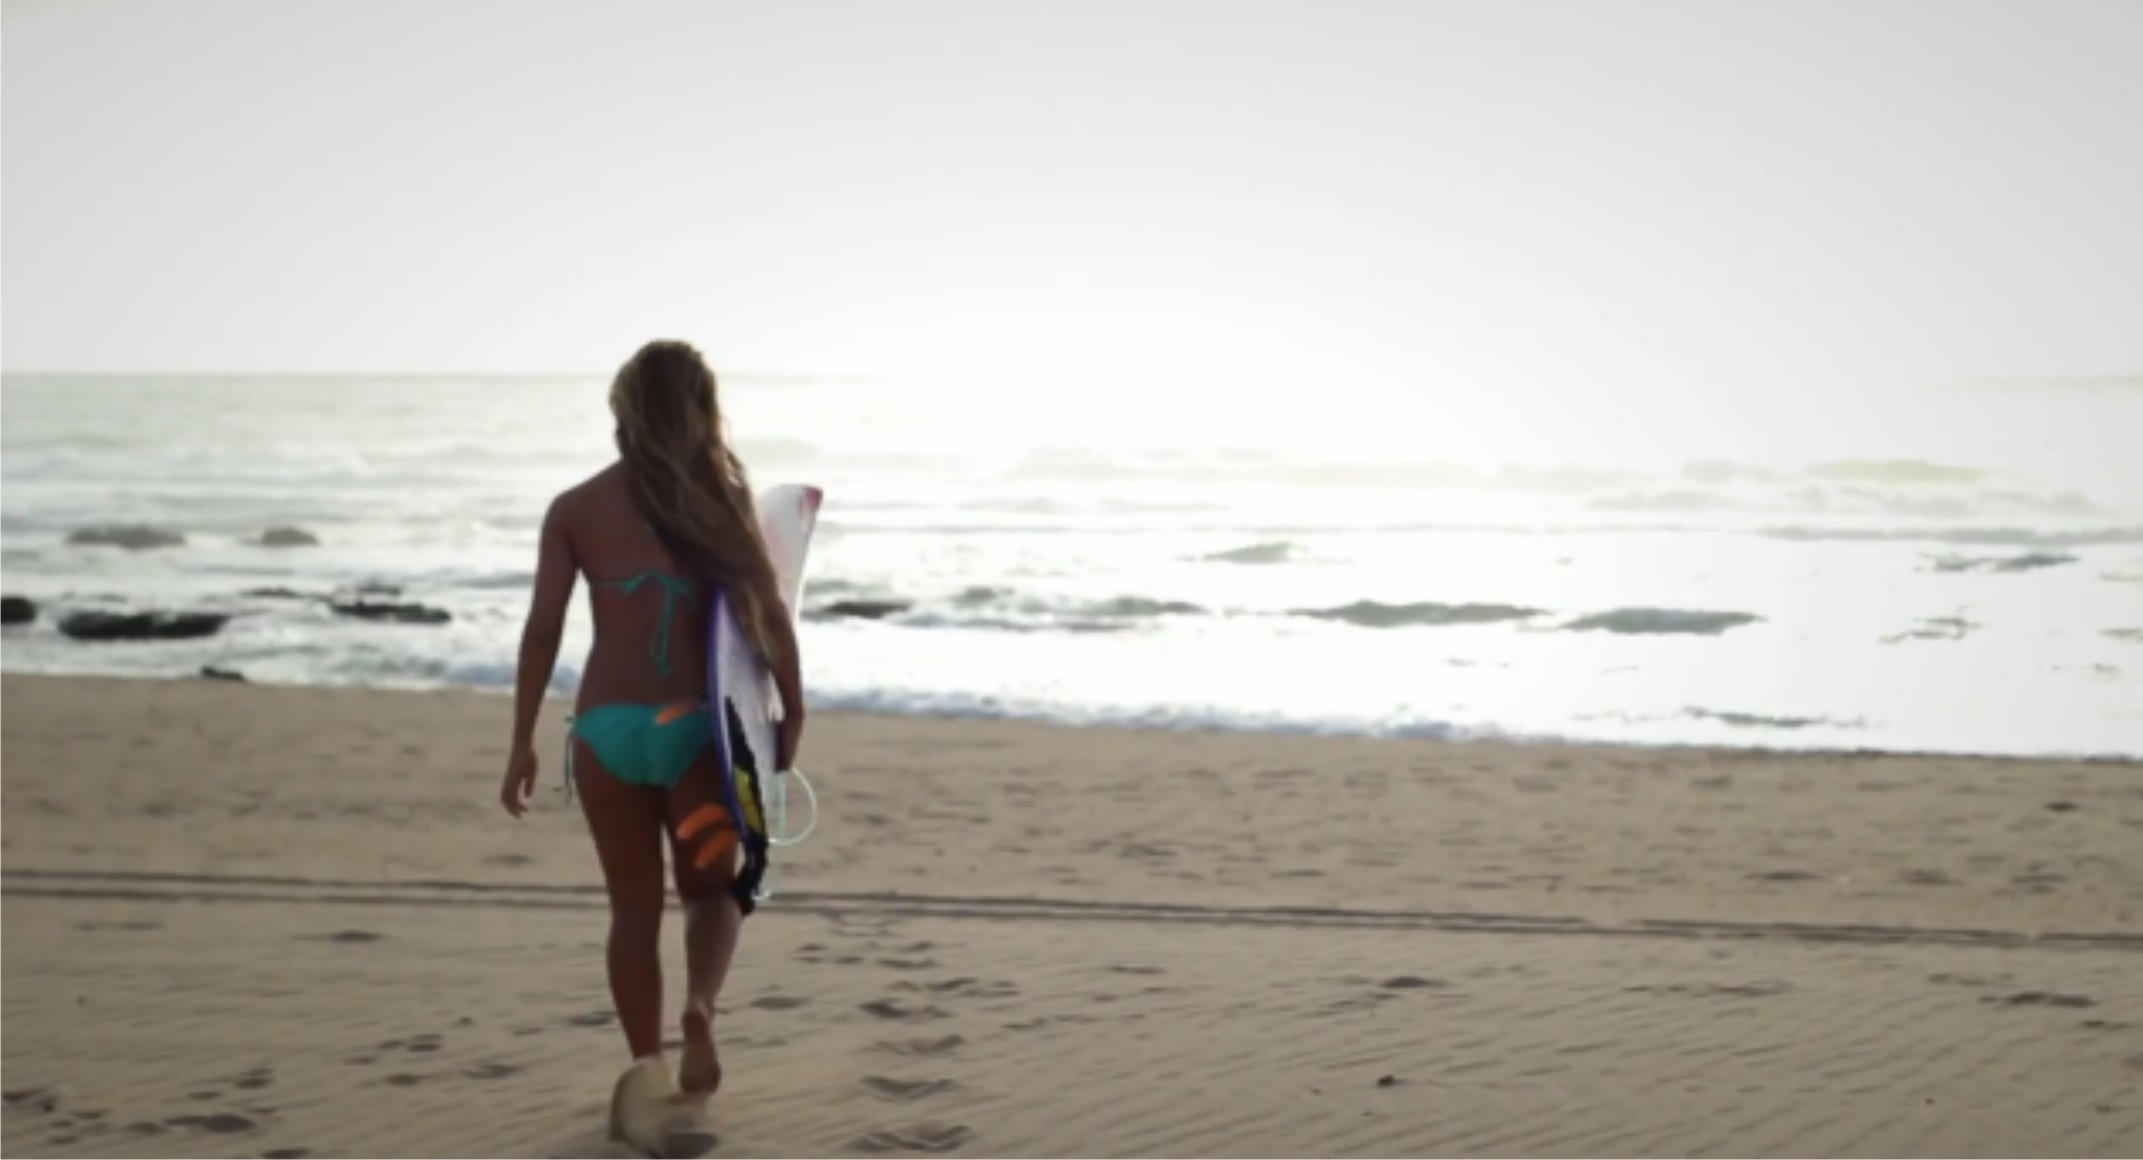 Chanelle Botha featured in her latest surfing video